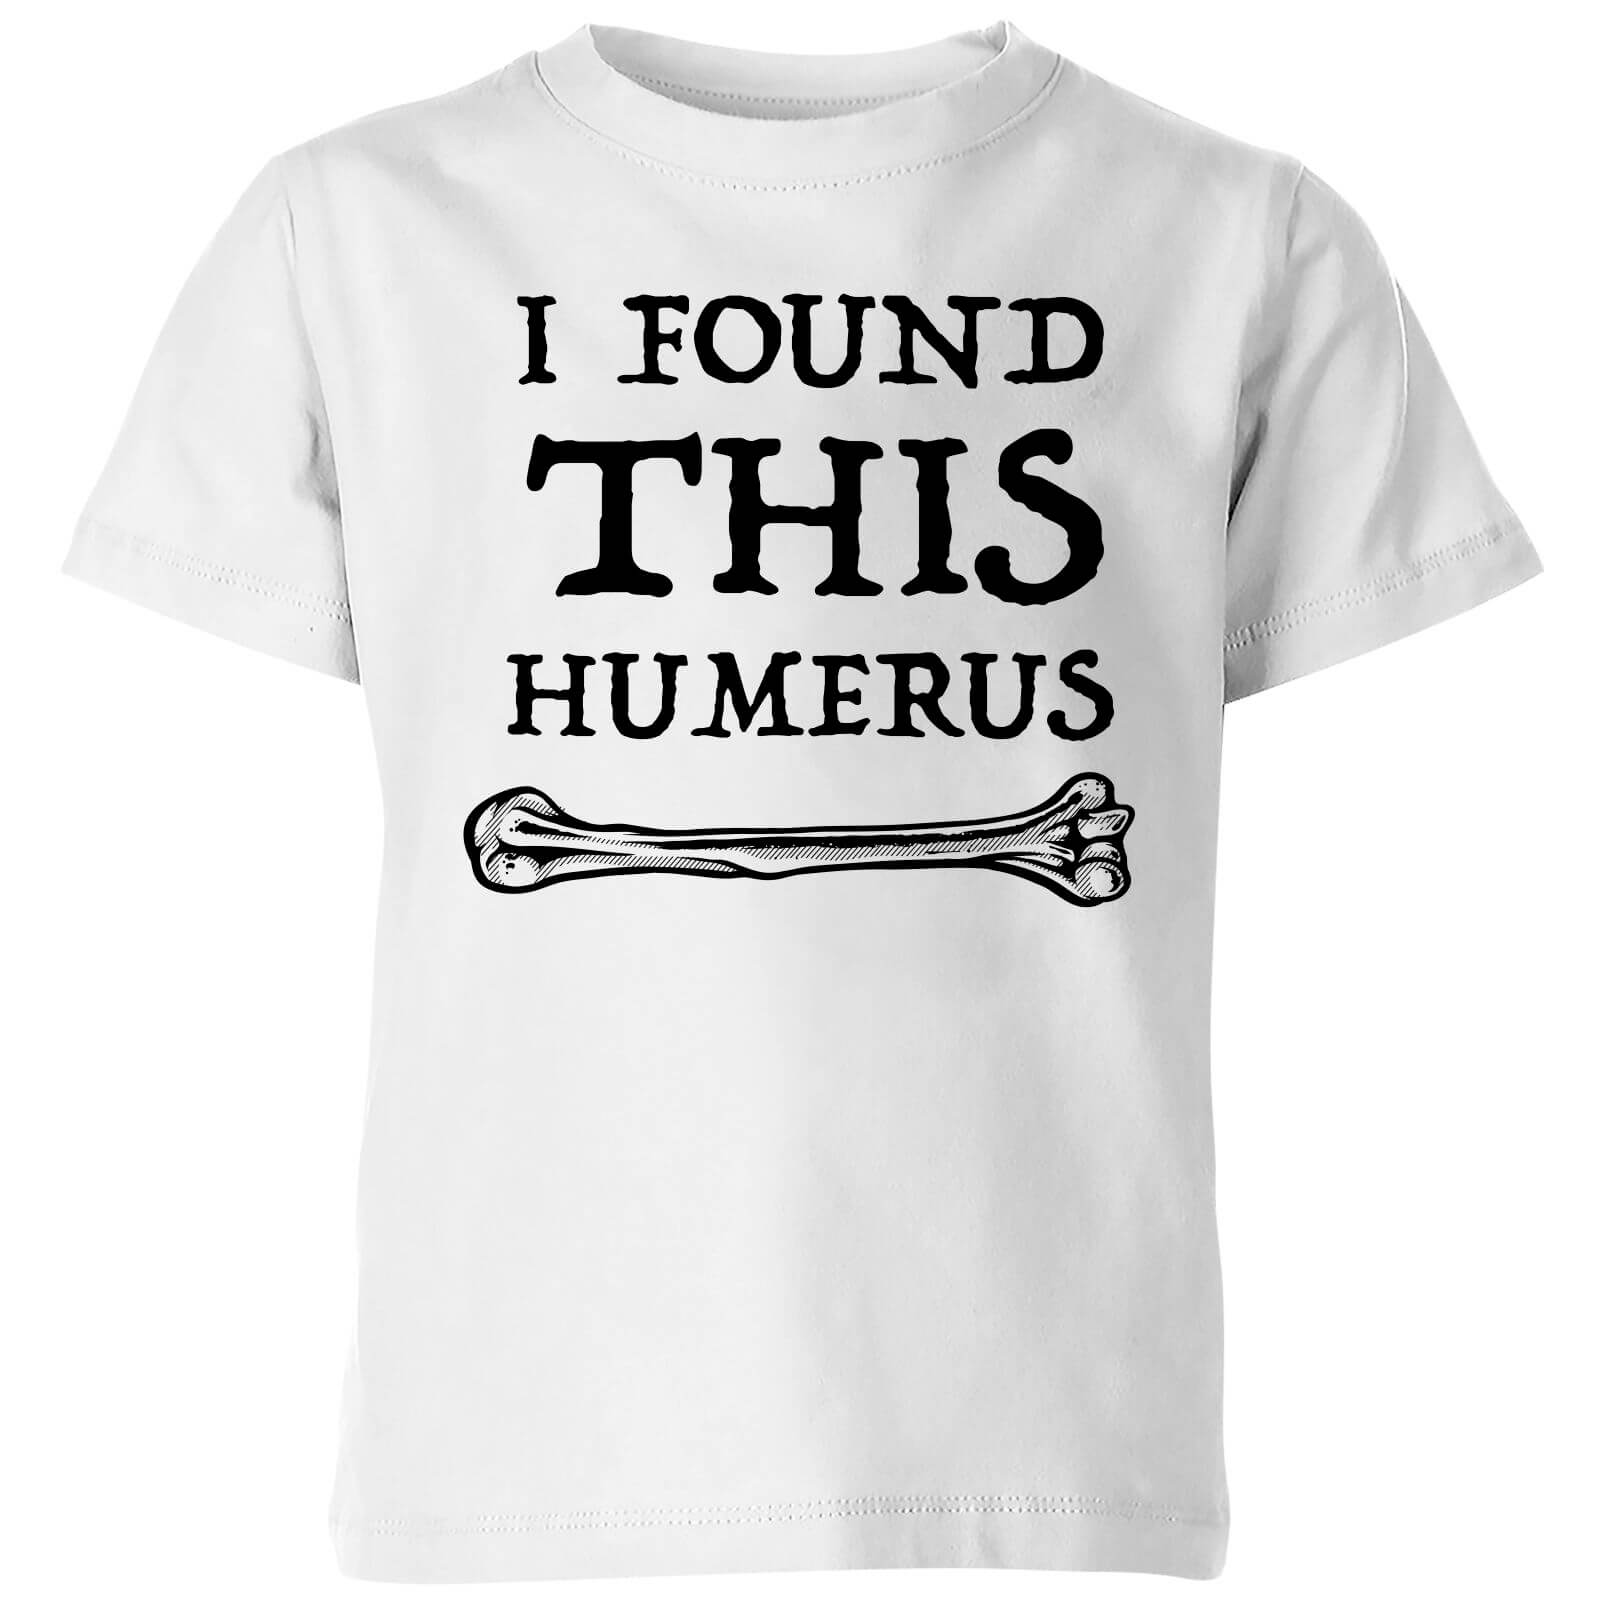 I Found This Humerus Kids T-shirt - White